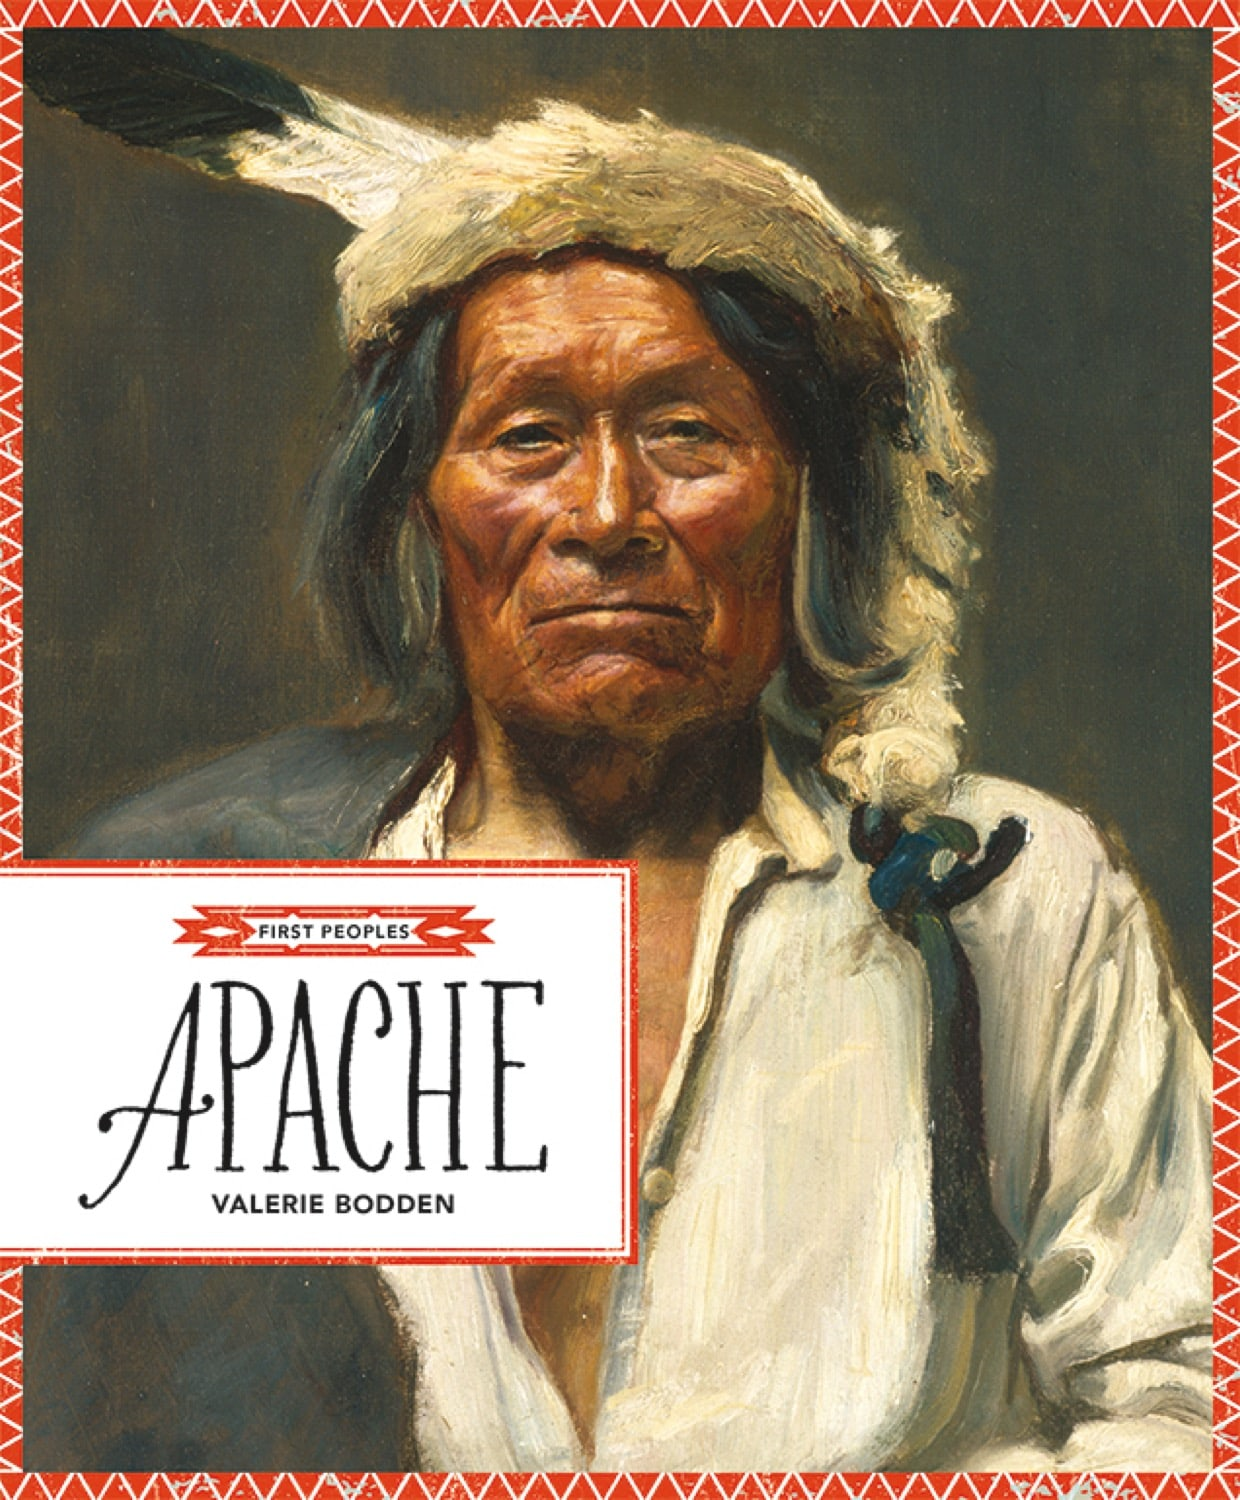 First Peoples: Apache